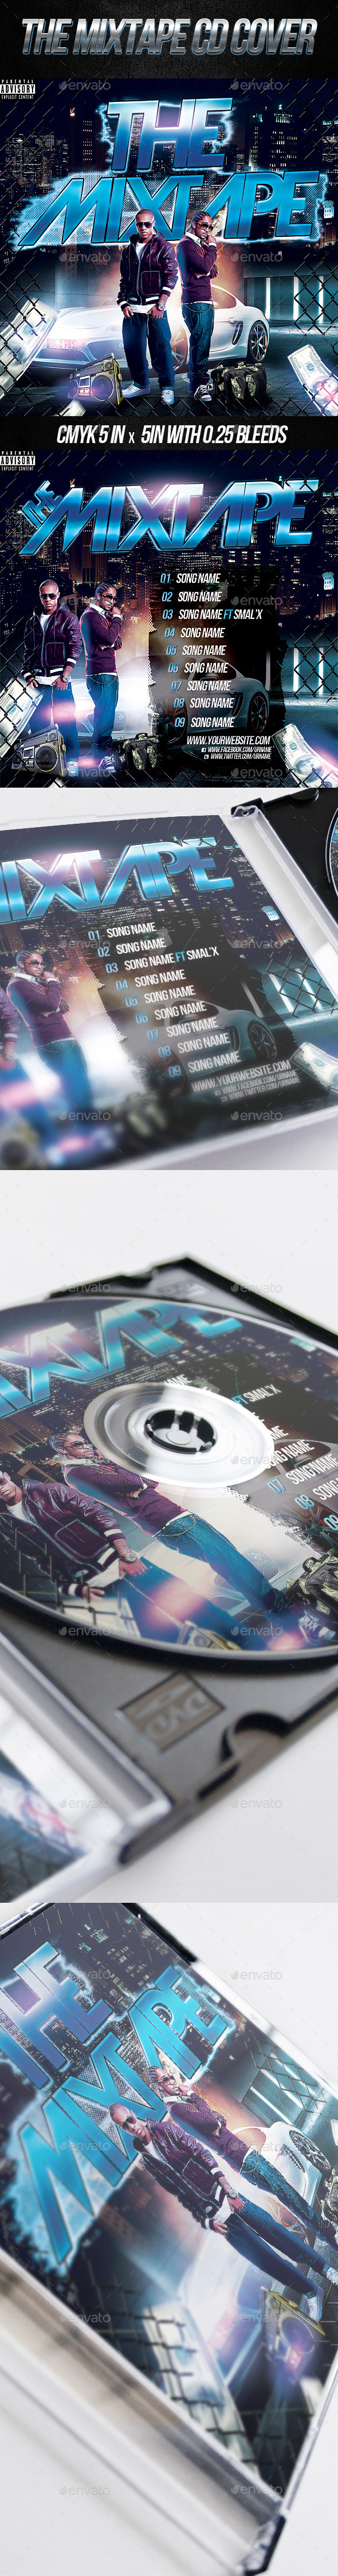 GraphicRiver The Mixtape CD Cover PSD Template 10785056